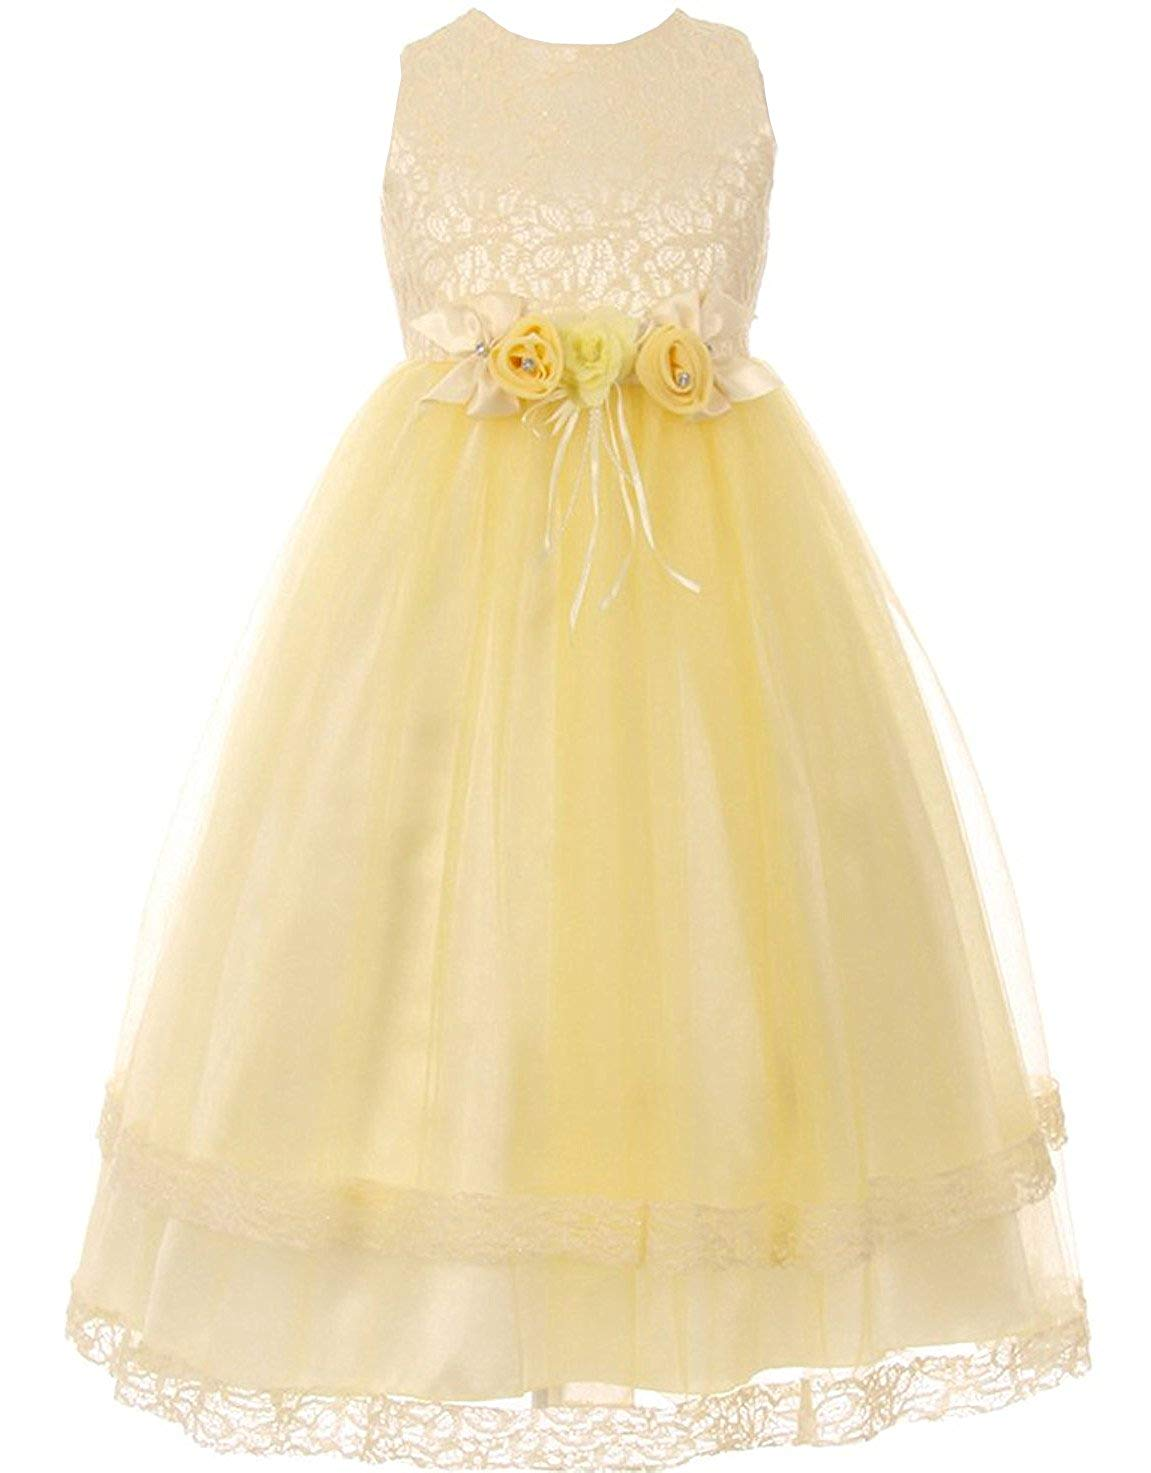 715a40cee92 Get Quotations · iGirldress Little Girls Lace Trim Double Layered Tulle  Flower Girl Dress Size 6Mos-12